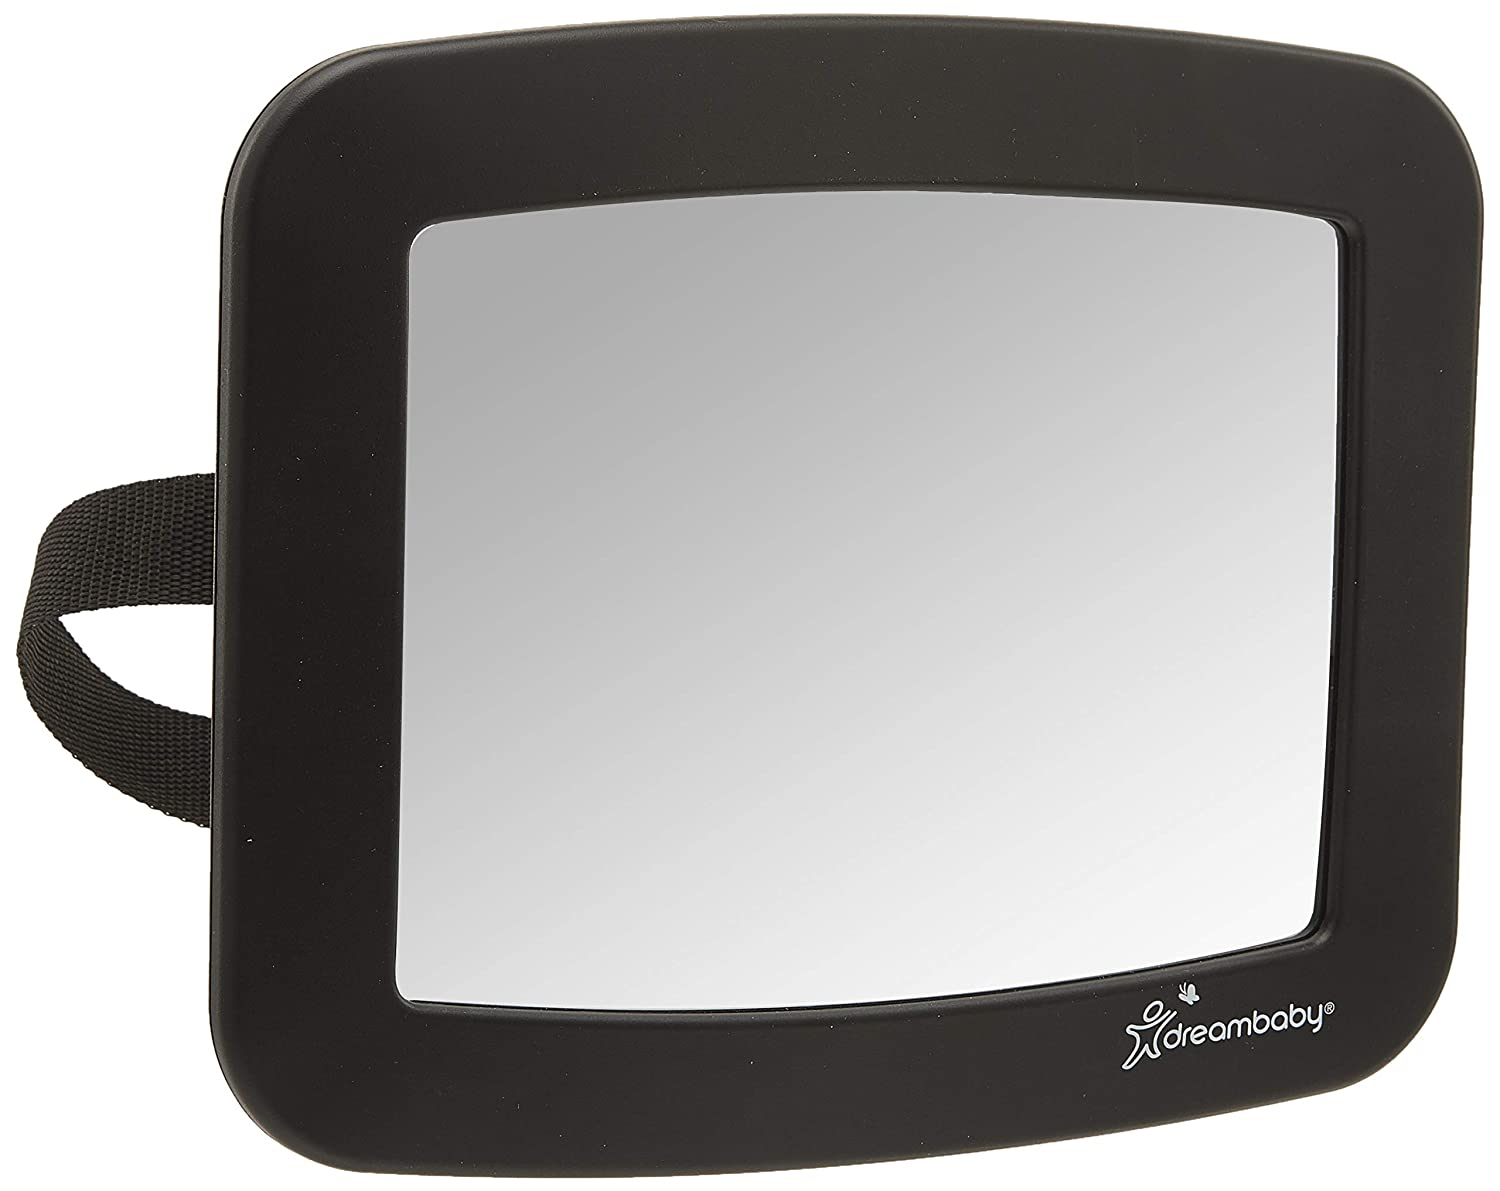 Dreambaby L263 Adjustable Backseat Mirror